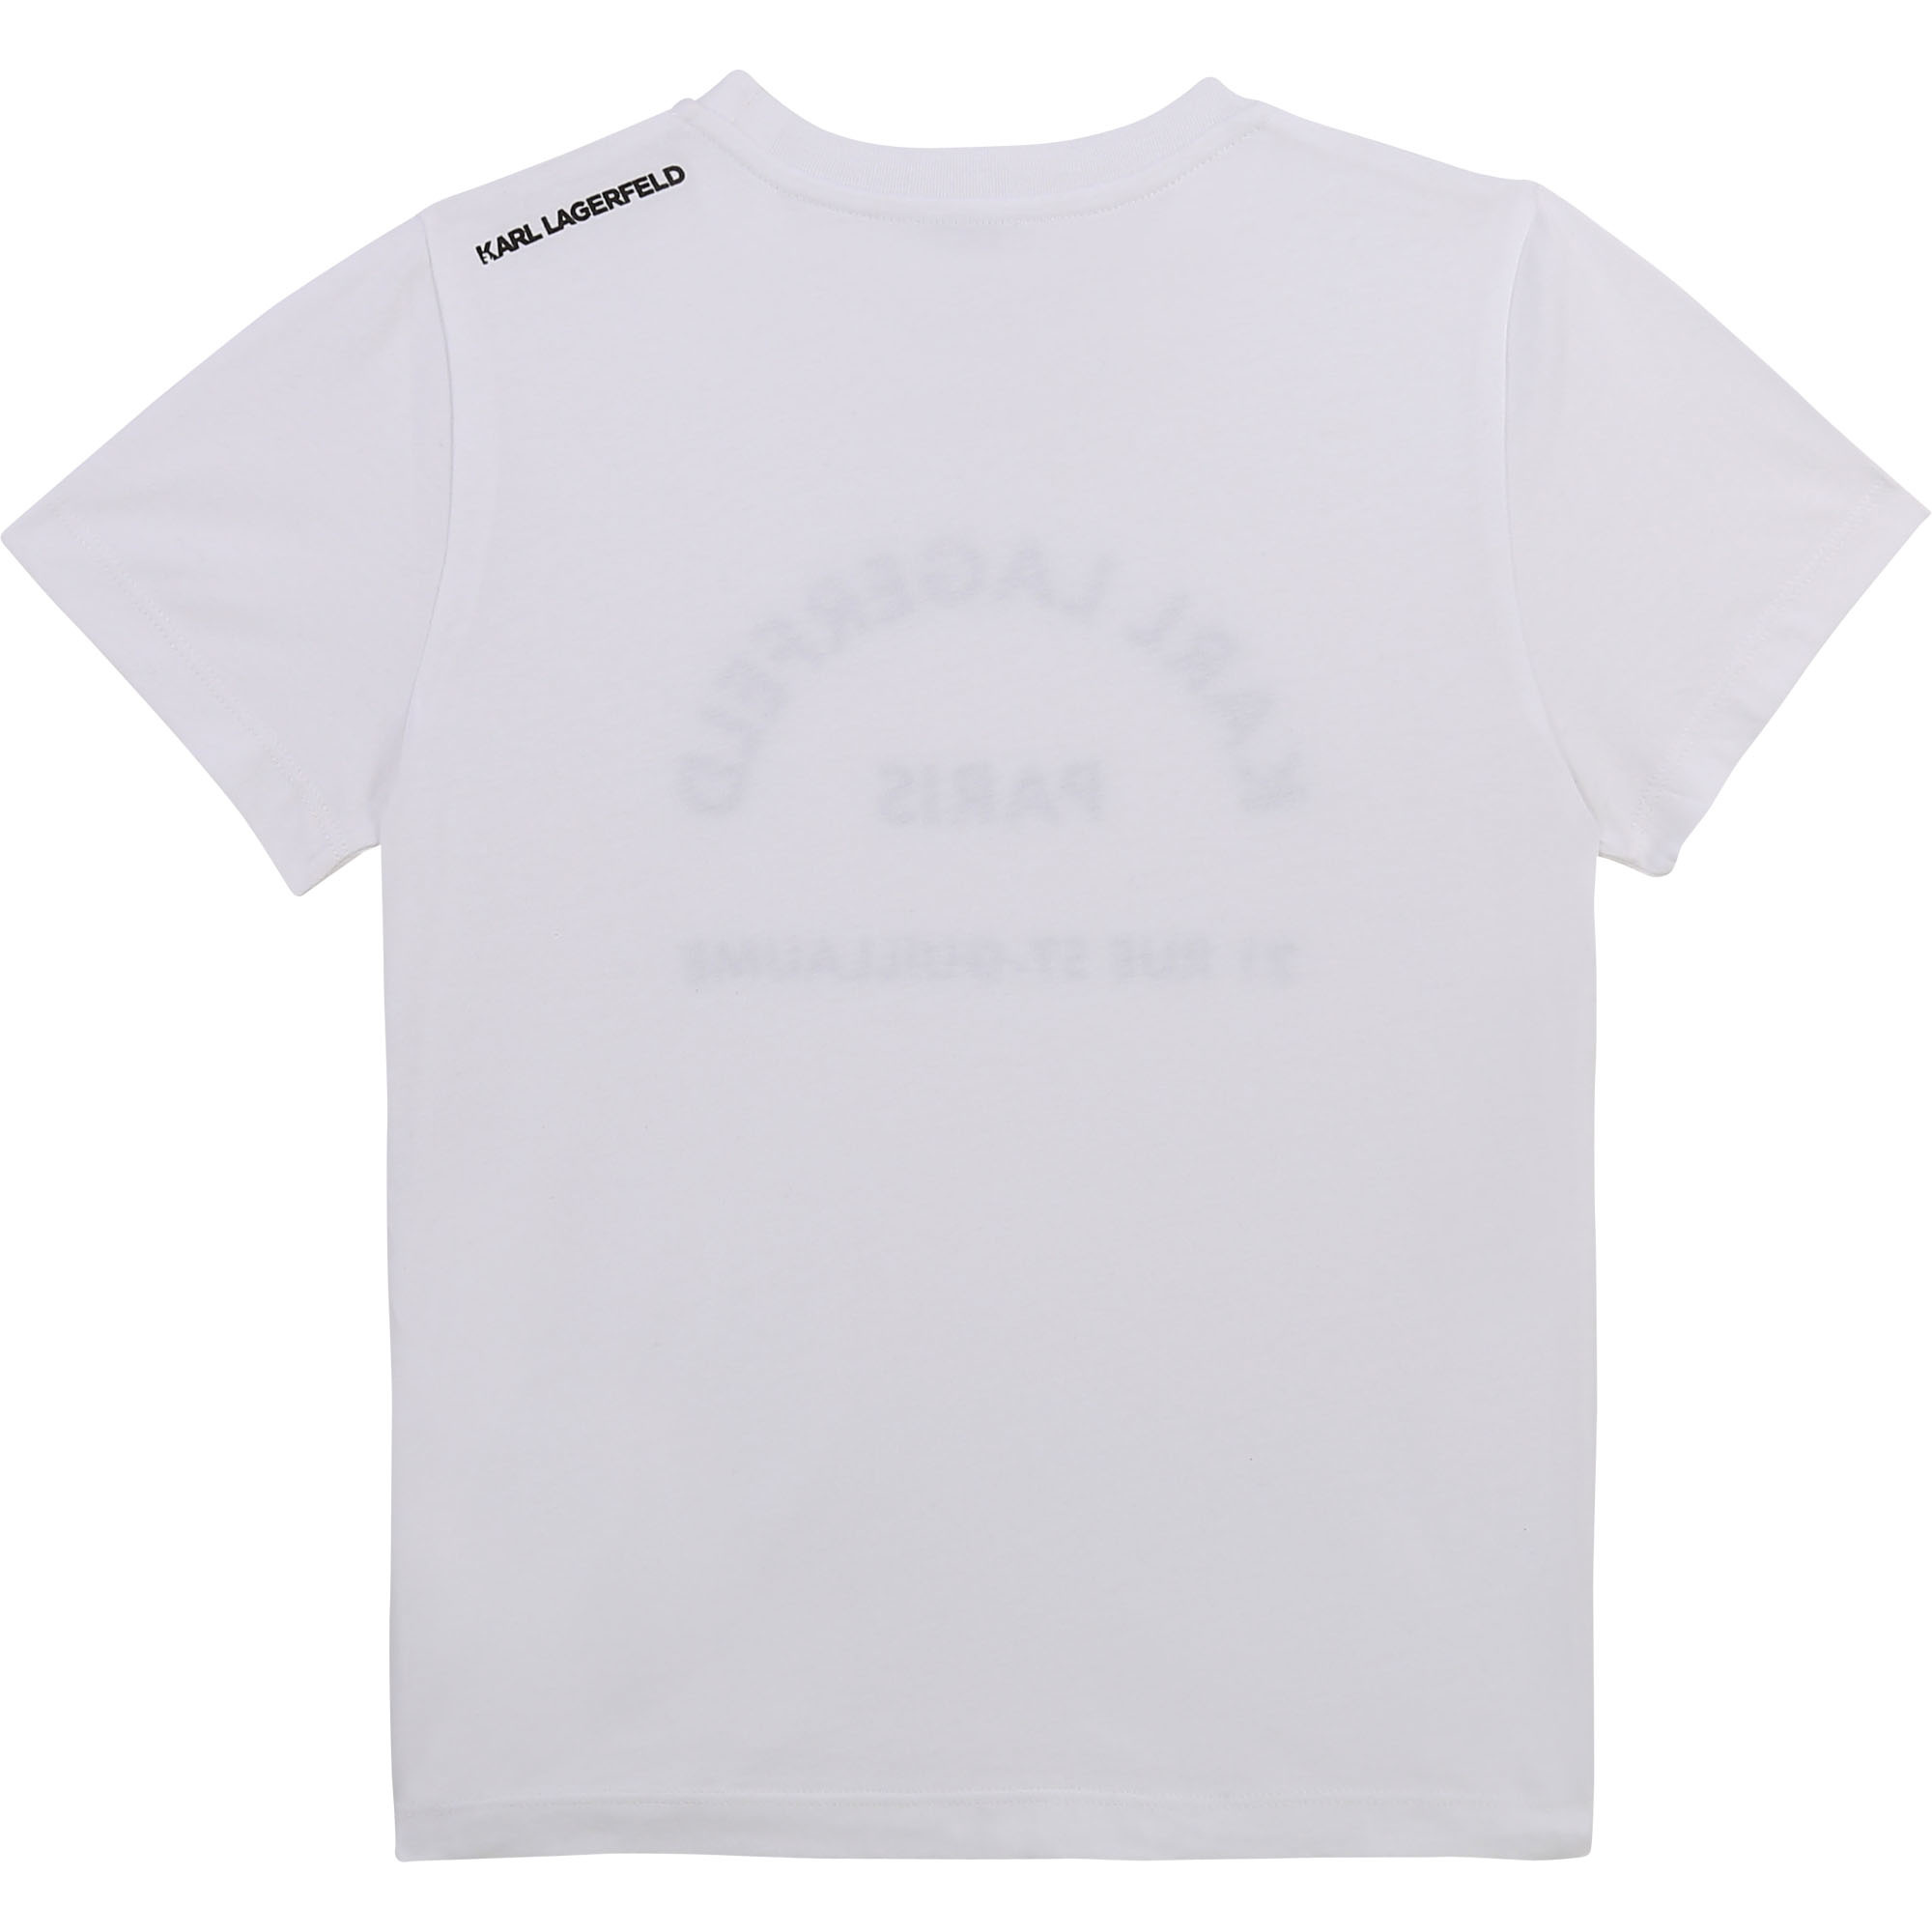 KARL LAGERFELD  KIDS  t-shirt ecriture-2